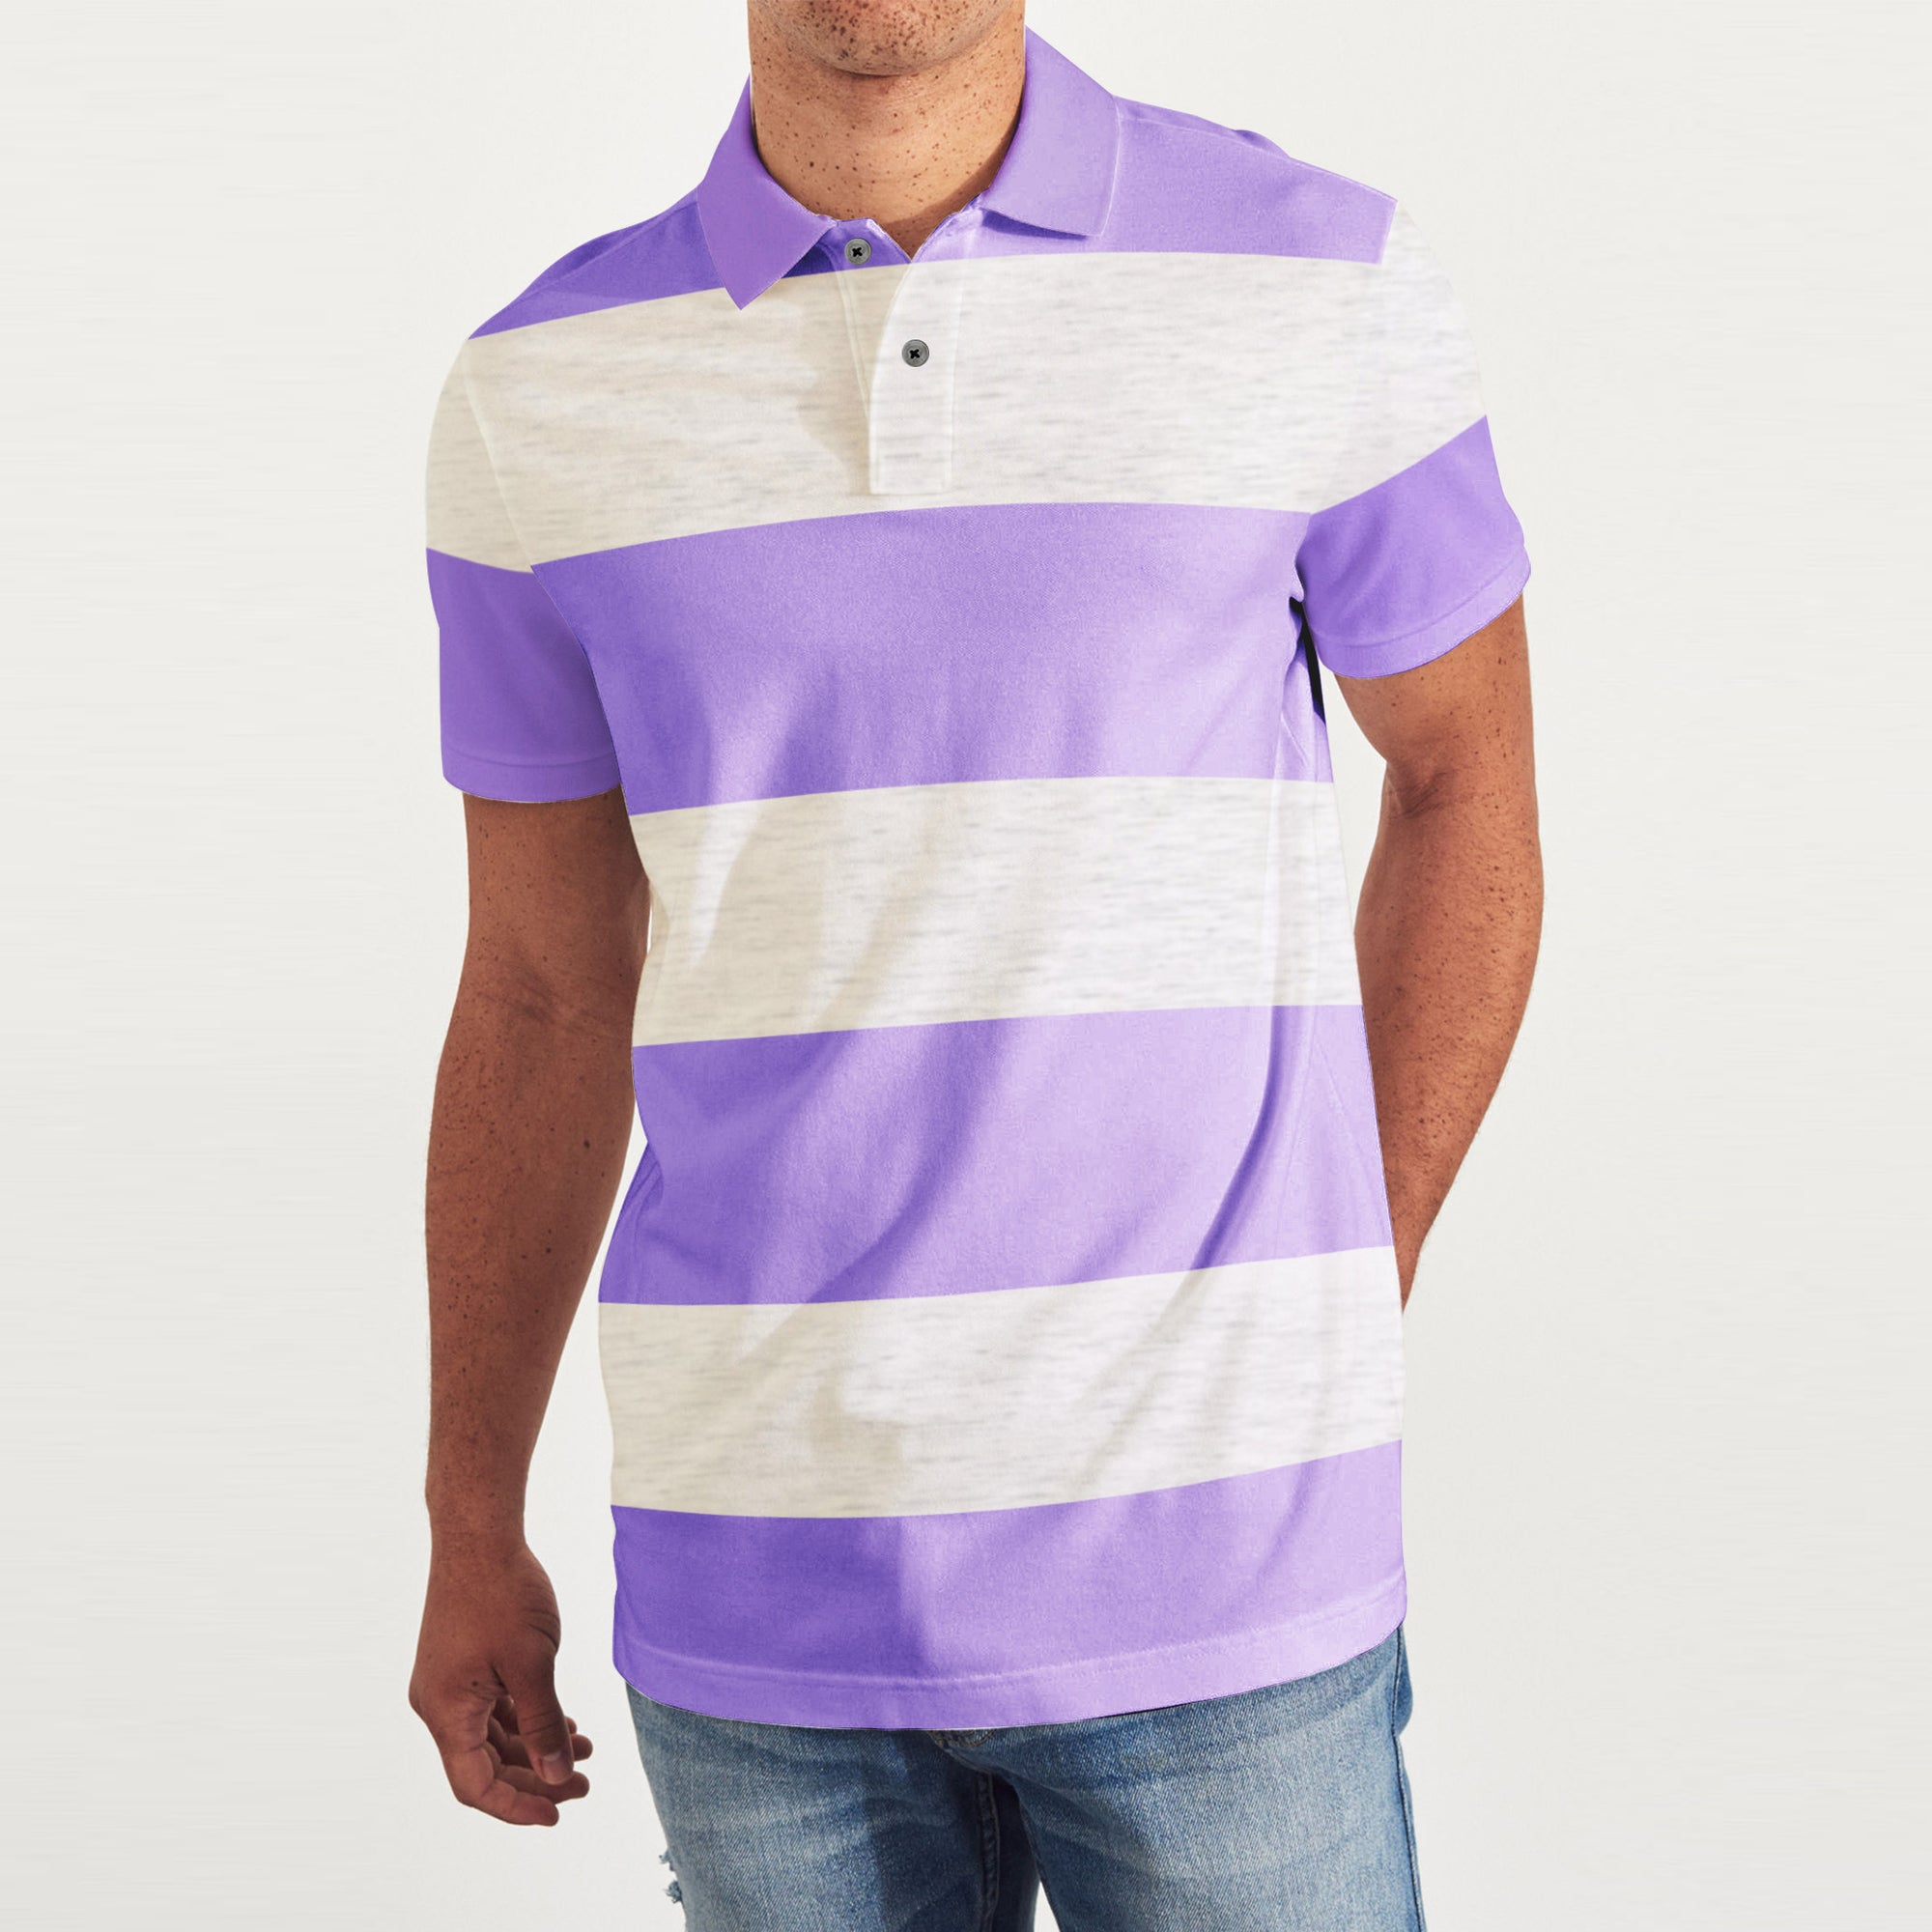 brandsego - GAP Short Sleeve P.Q Polo Shirt For Men-Off White Melange & Purple Stripe-BE8444-1